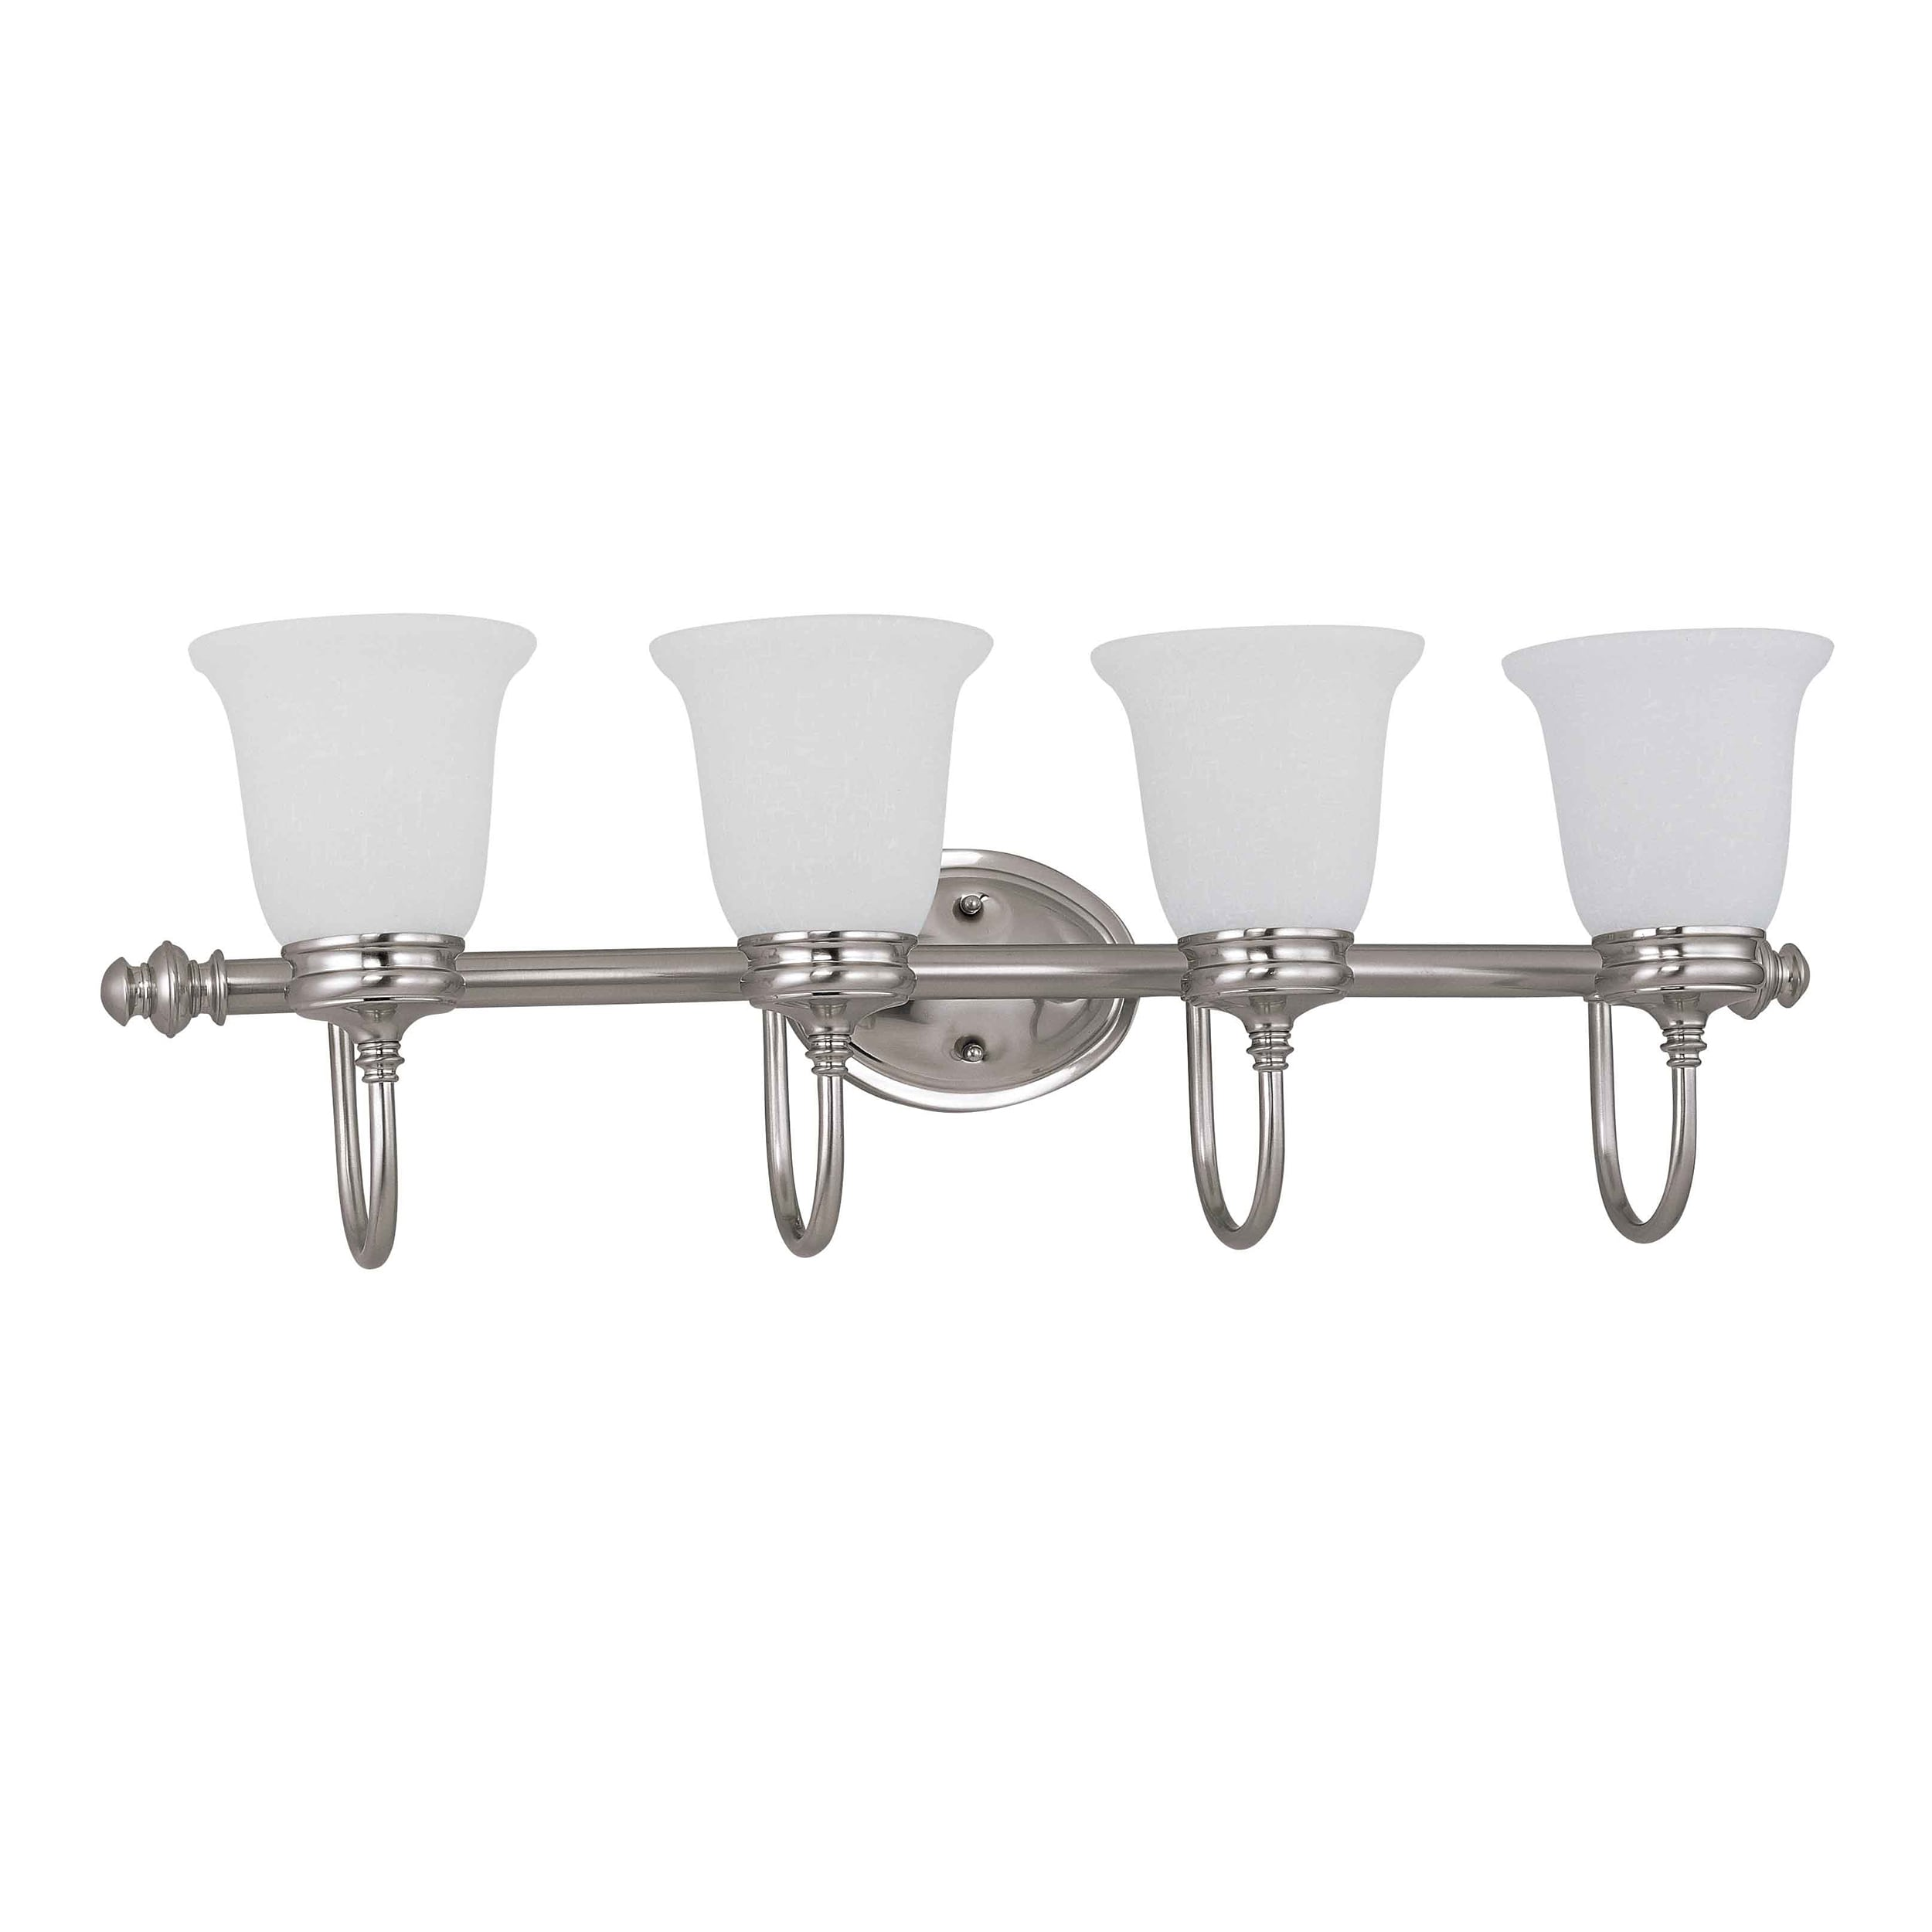 Salem 4 Light Brushed Nickel With Frosted Linen Glass Vanity